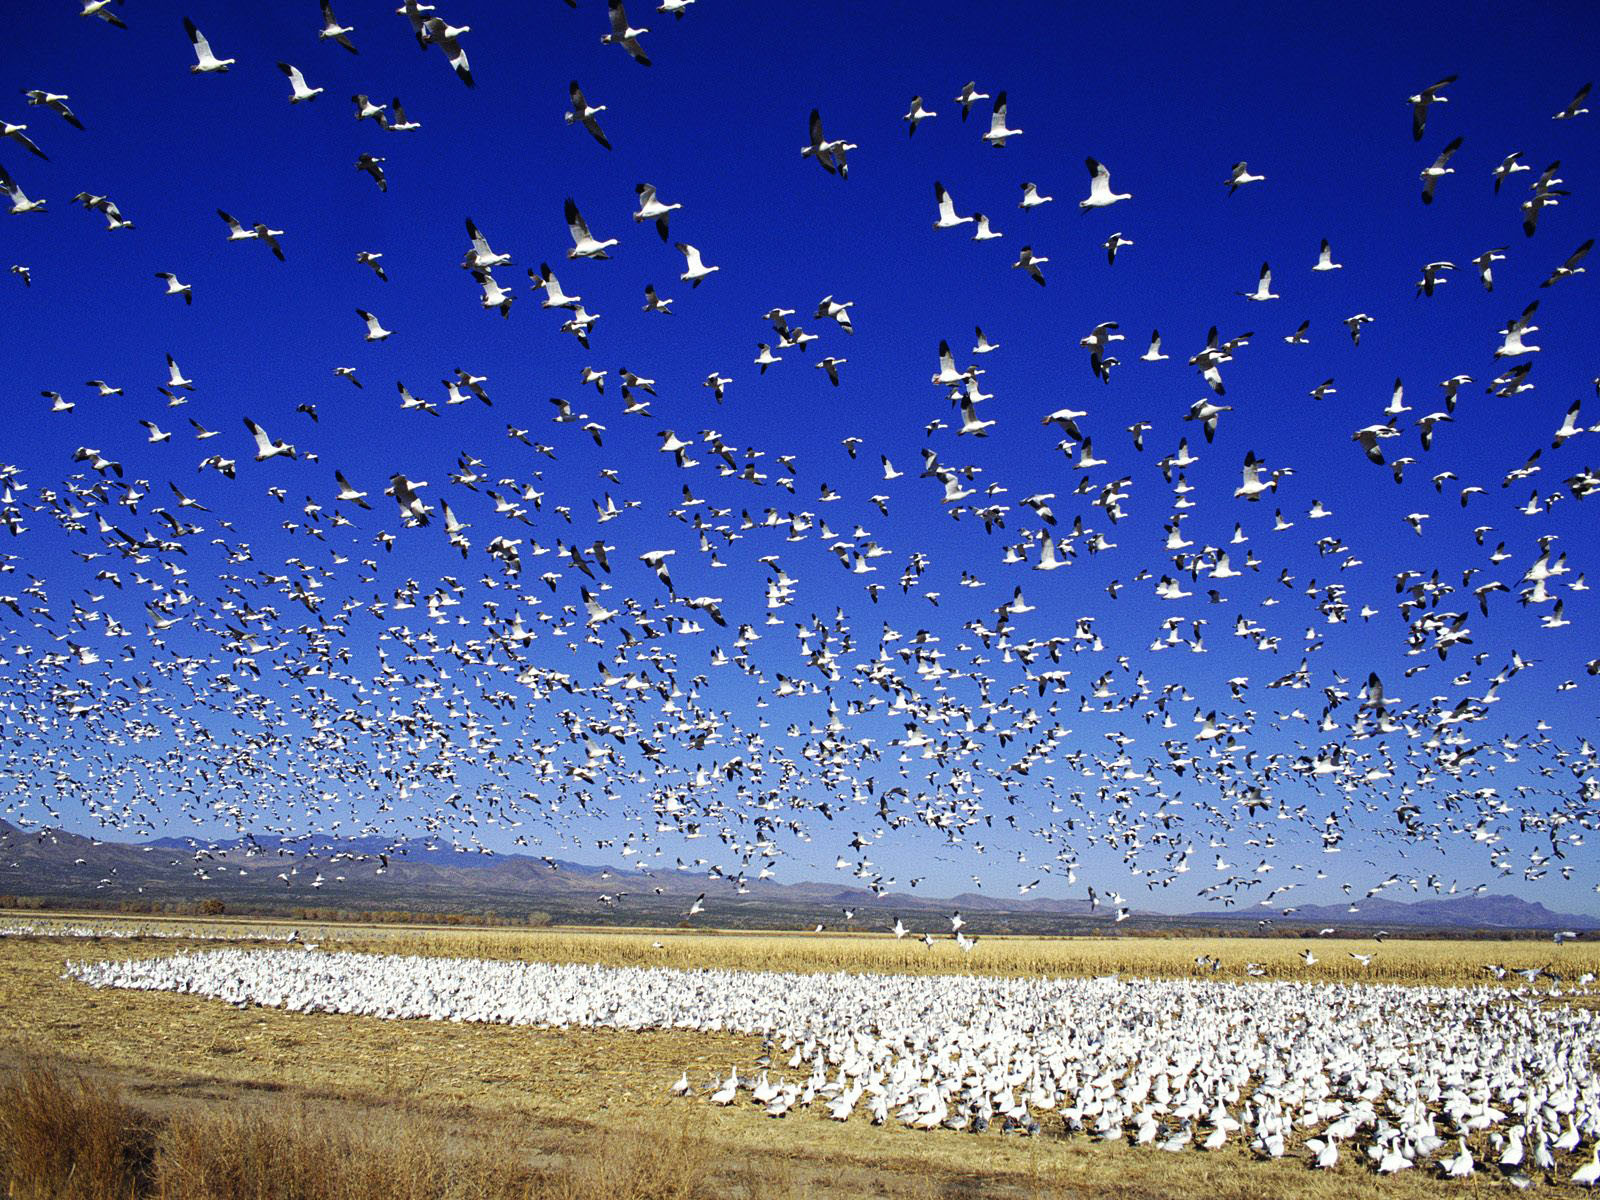 Snow Geese Wallpaper